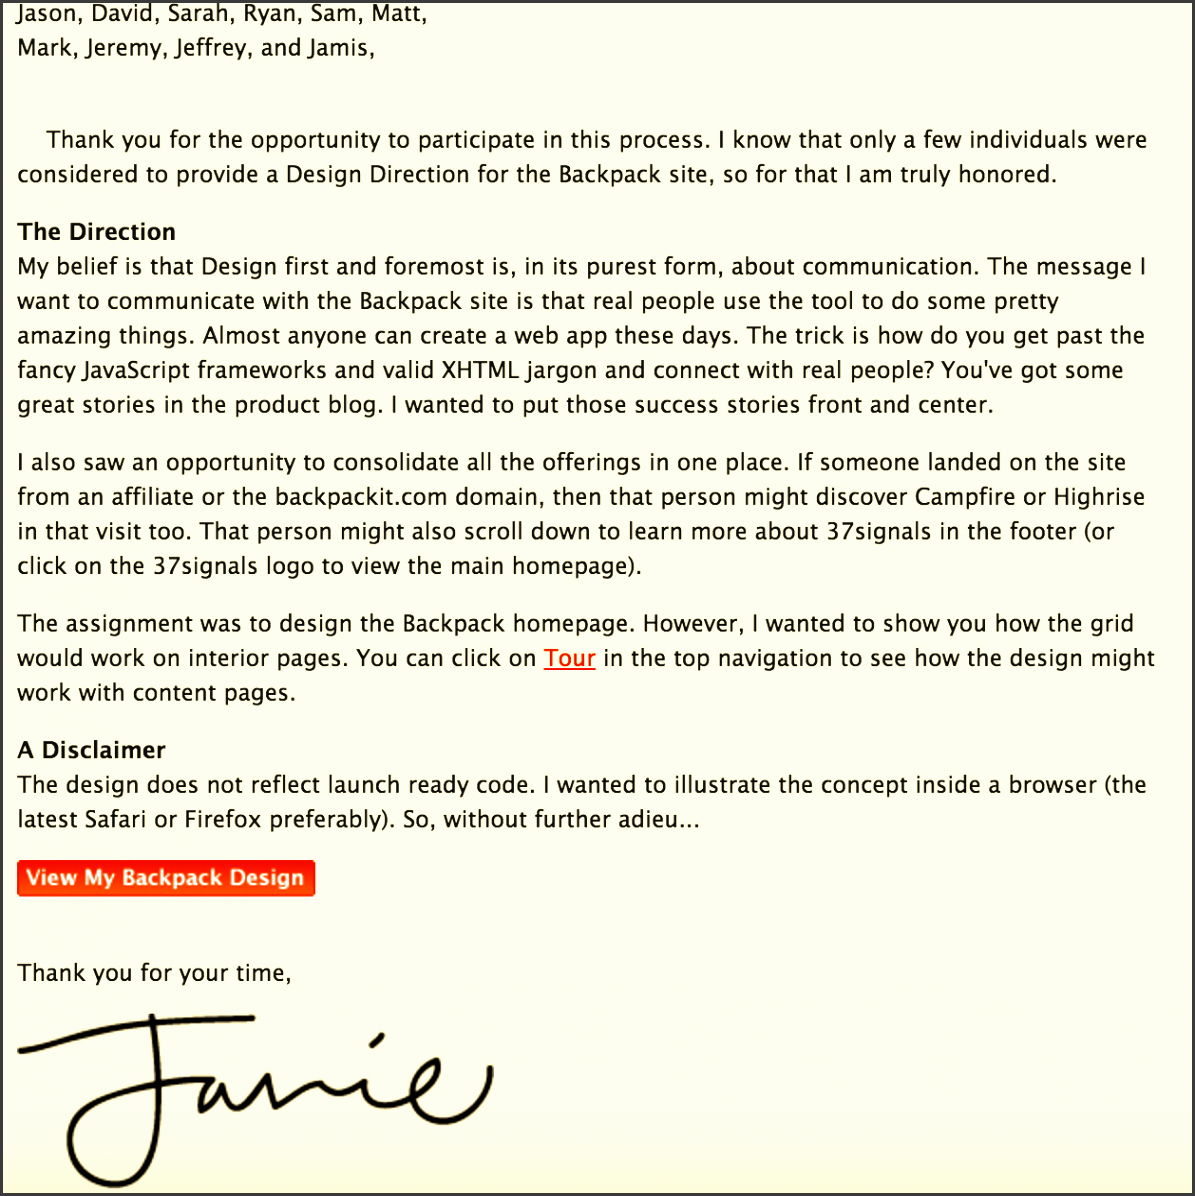 cover letter for a design director at 37 signals